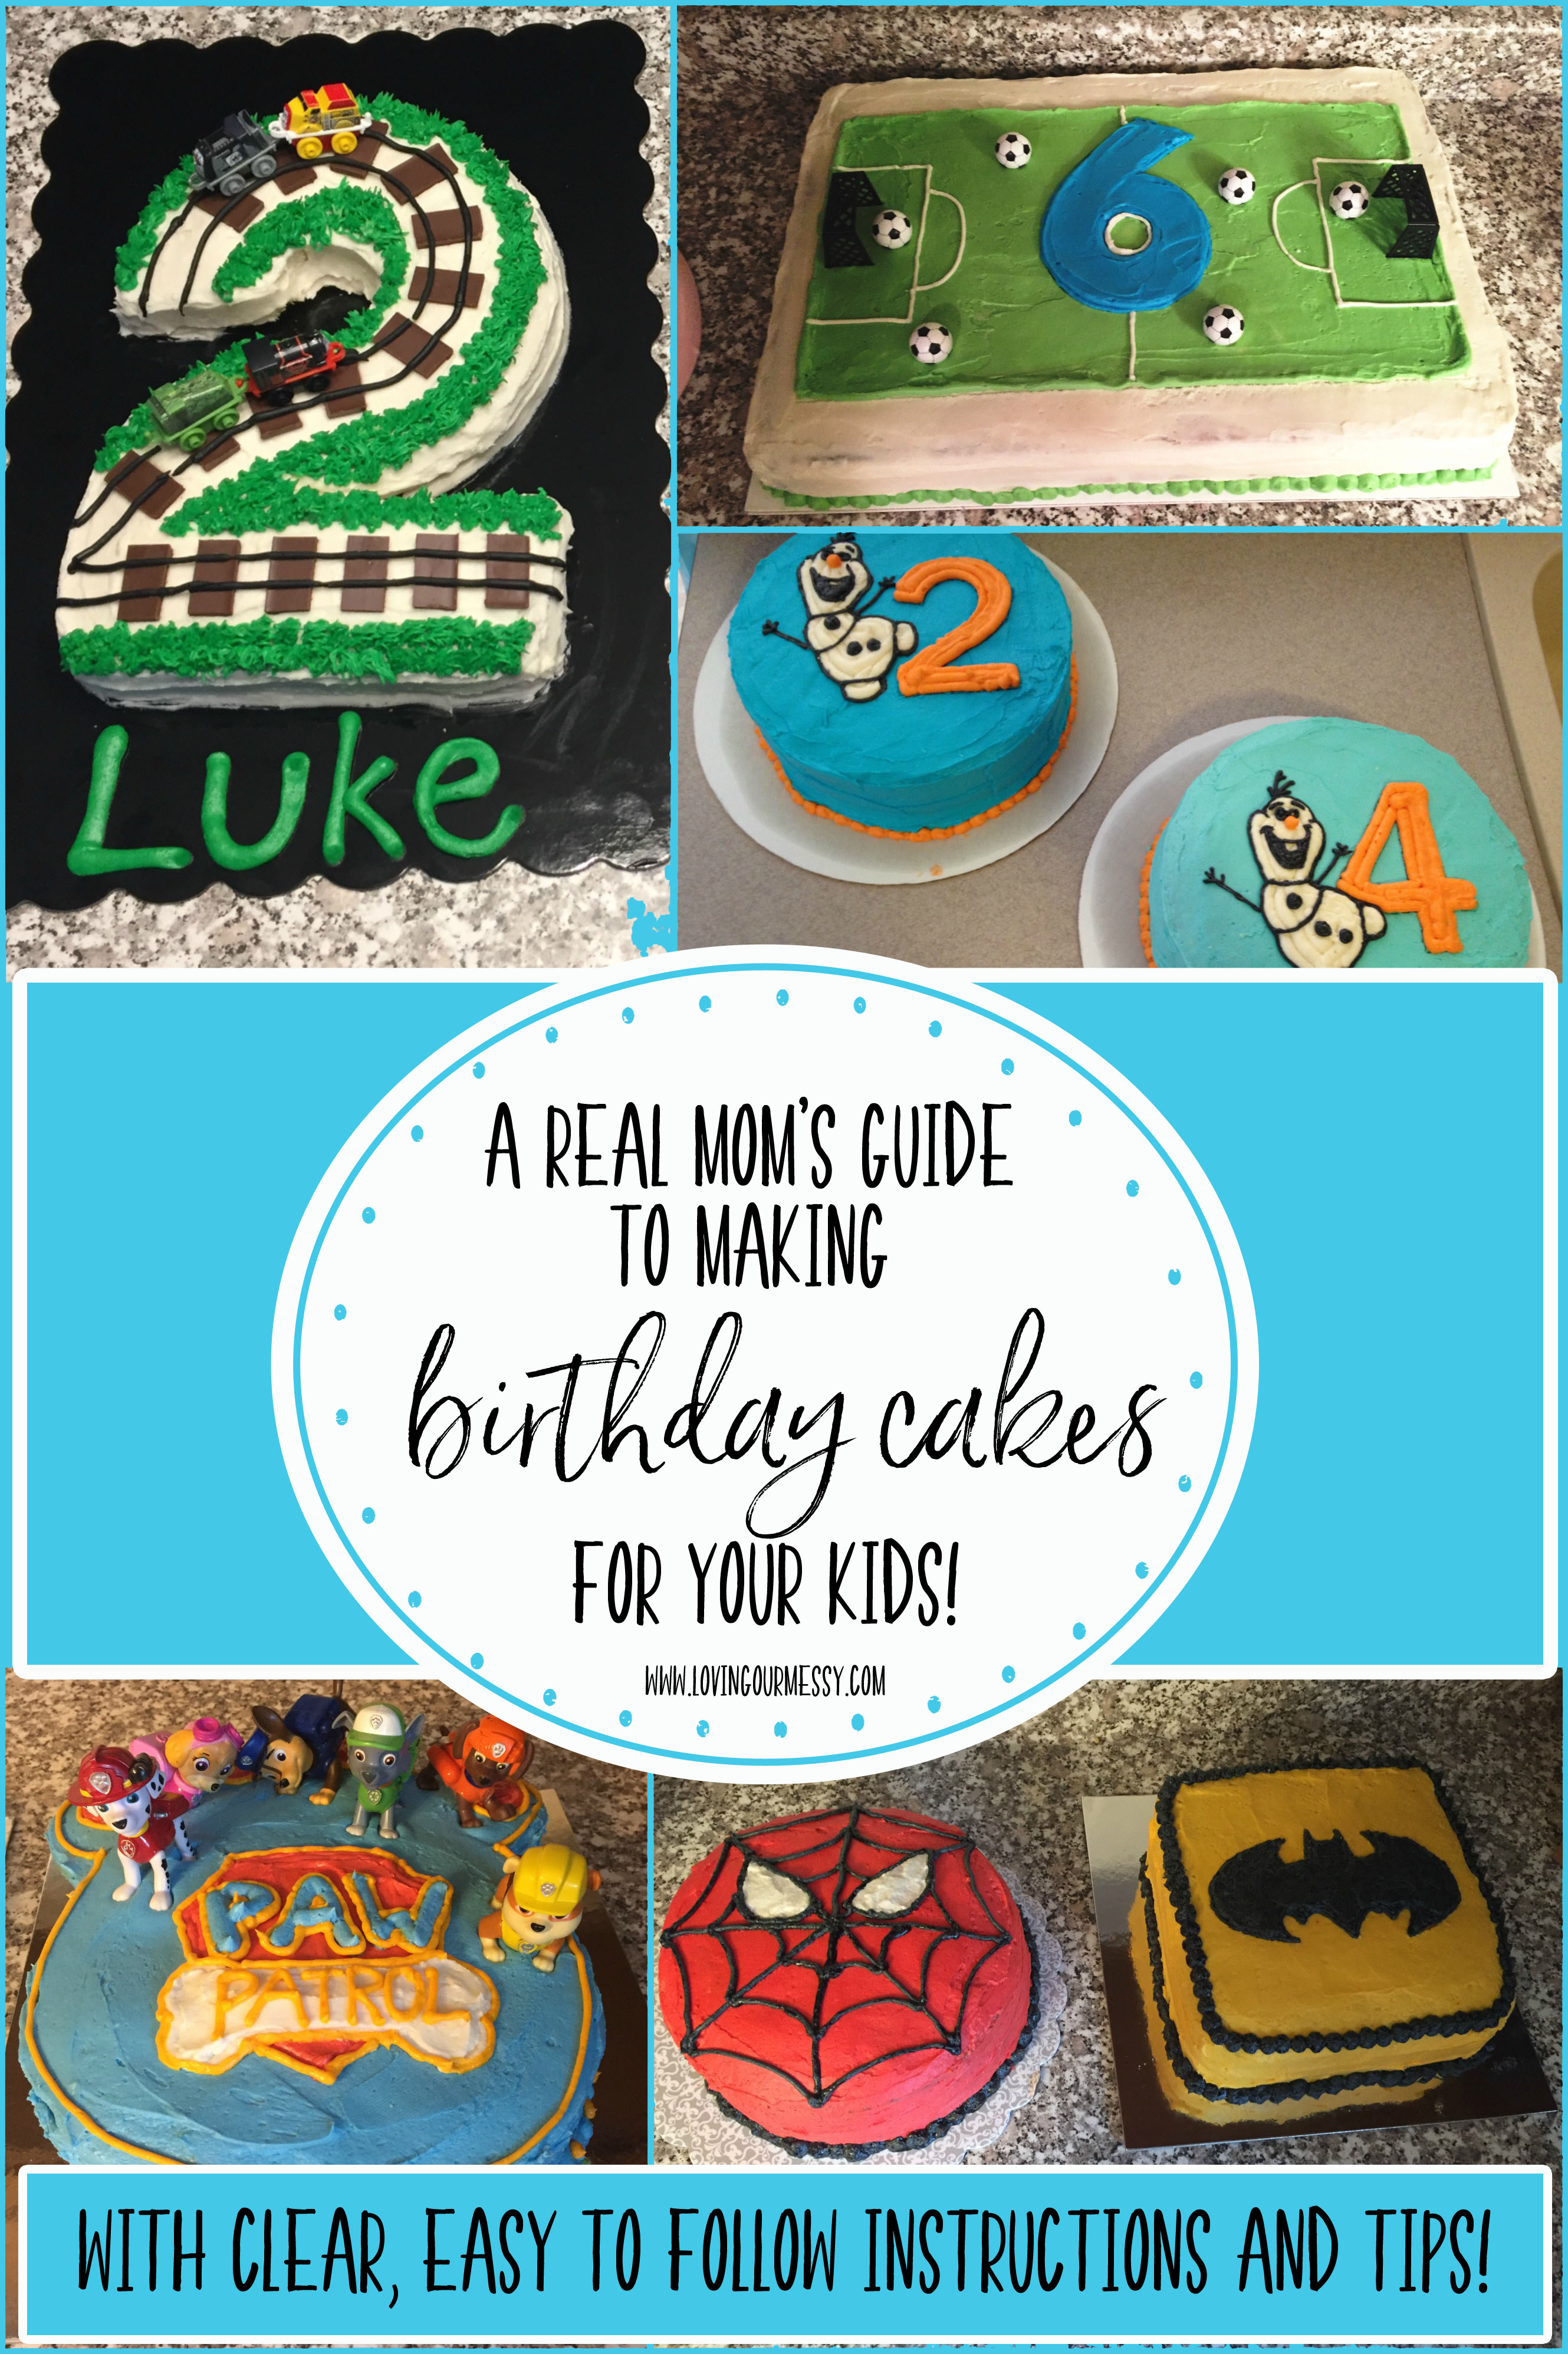 A Real Moms Guide To Making Birthday Cakes For Your Kids